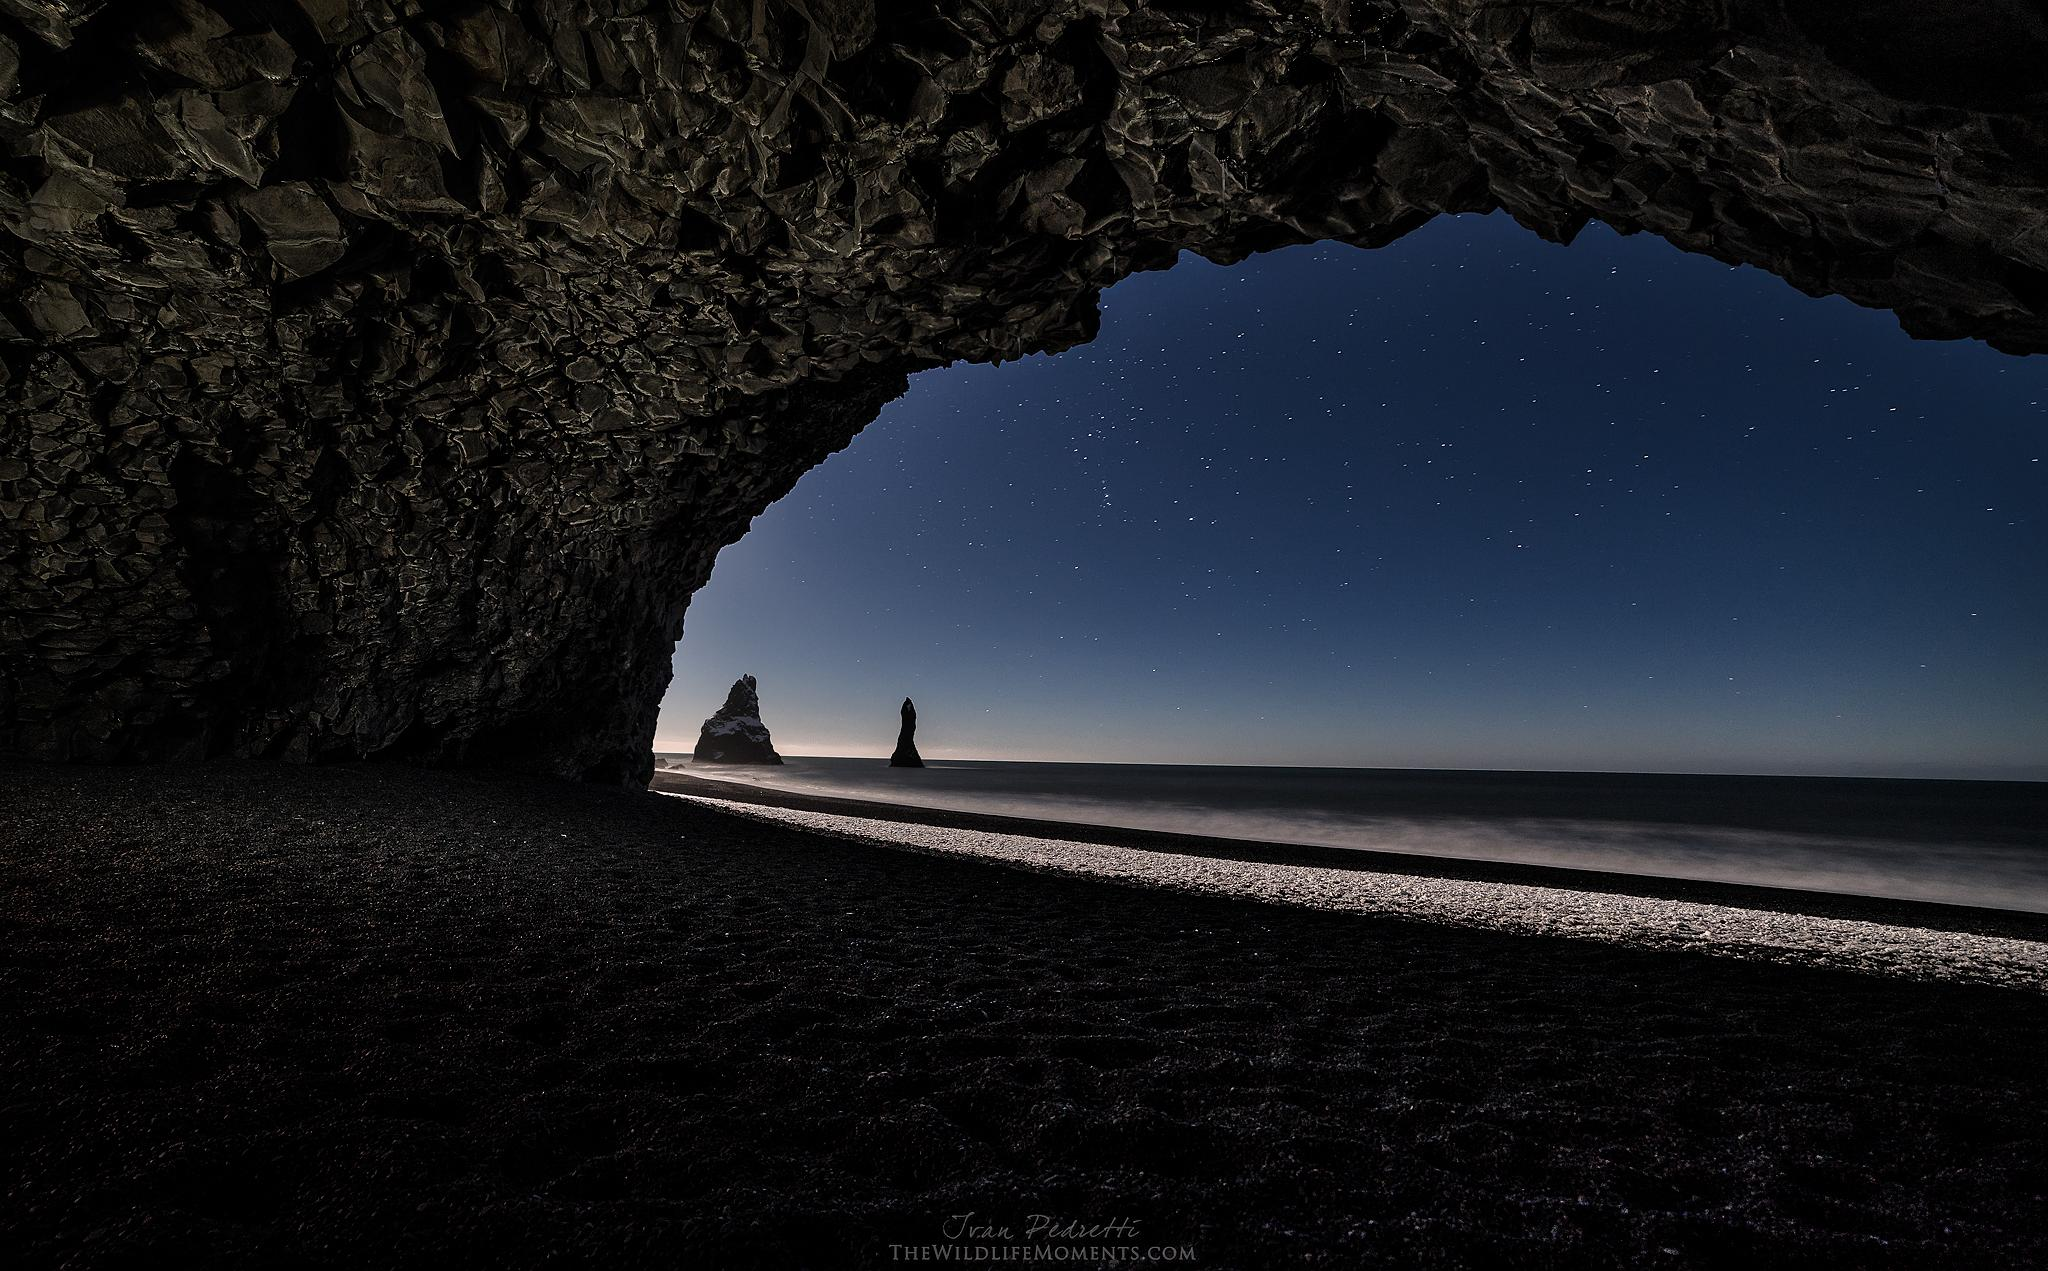 Moonlight  cave  by Ivan Pedretti